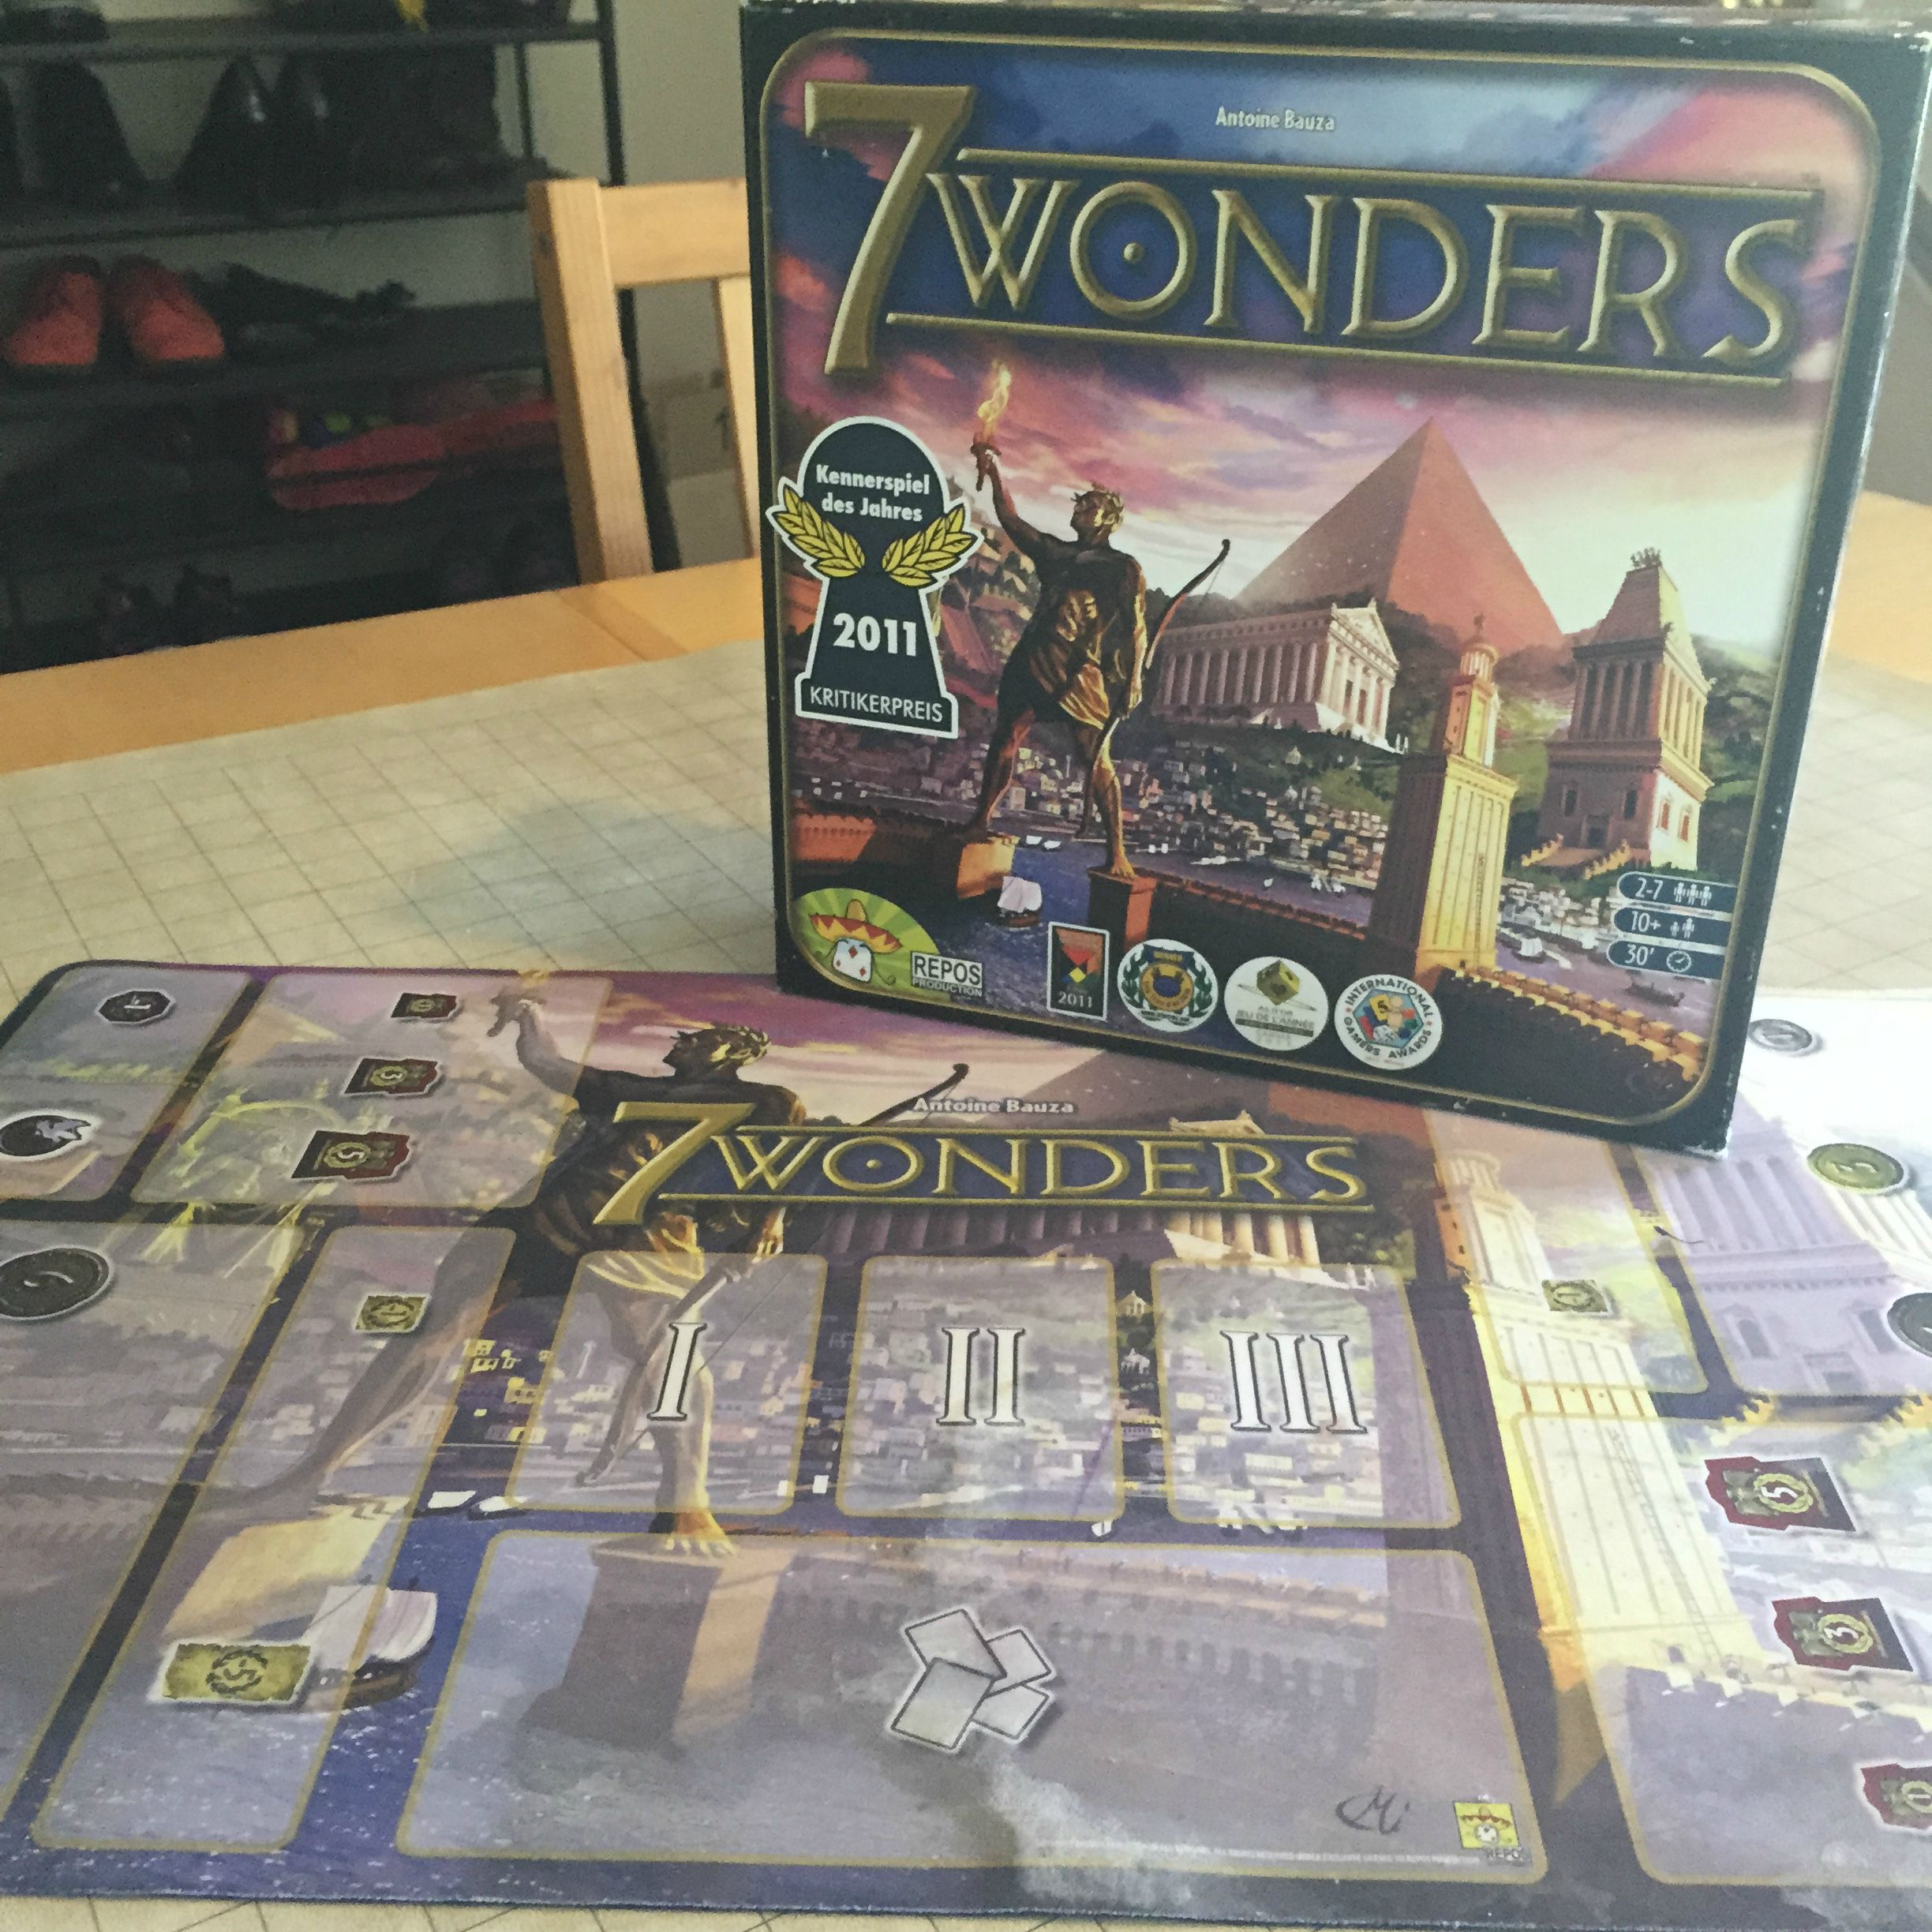 Tabletoplover_7_Wonders_board_game_insert_by_The_Broken_Token_008.jpg